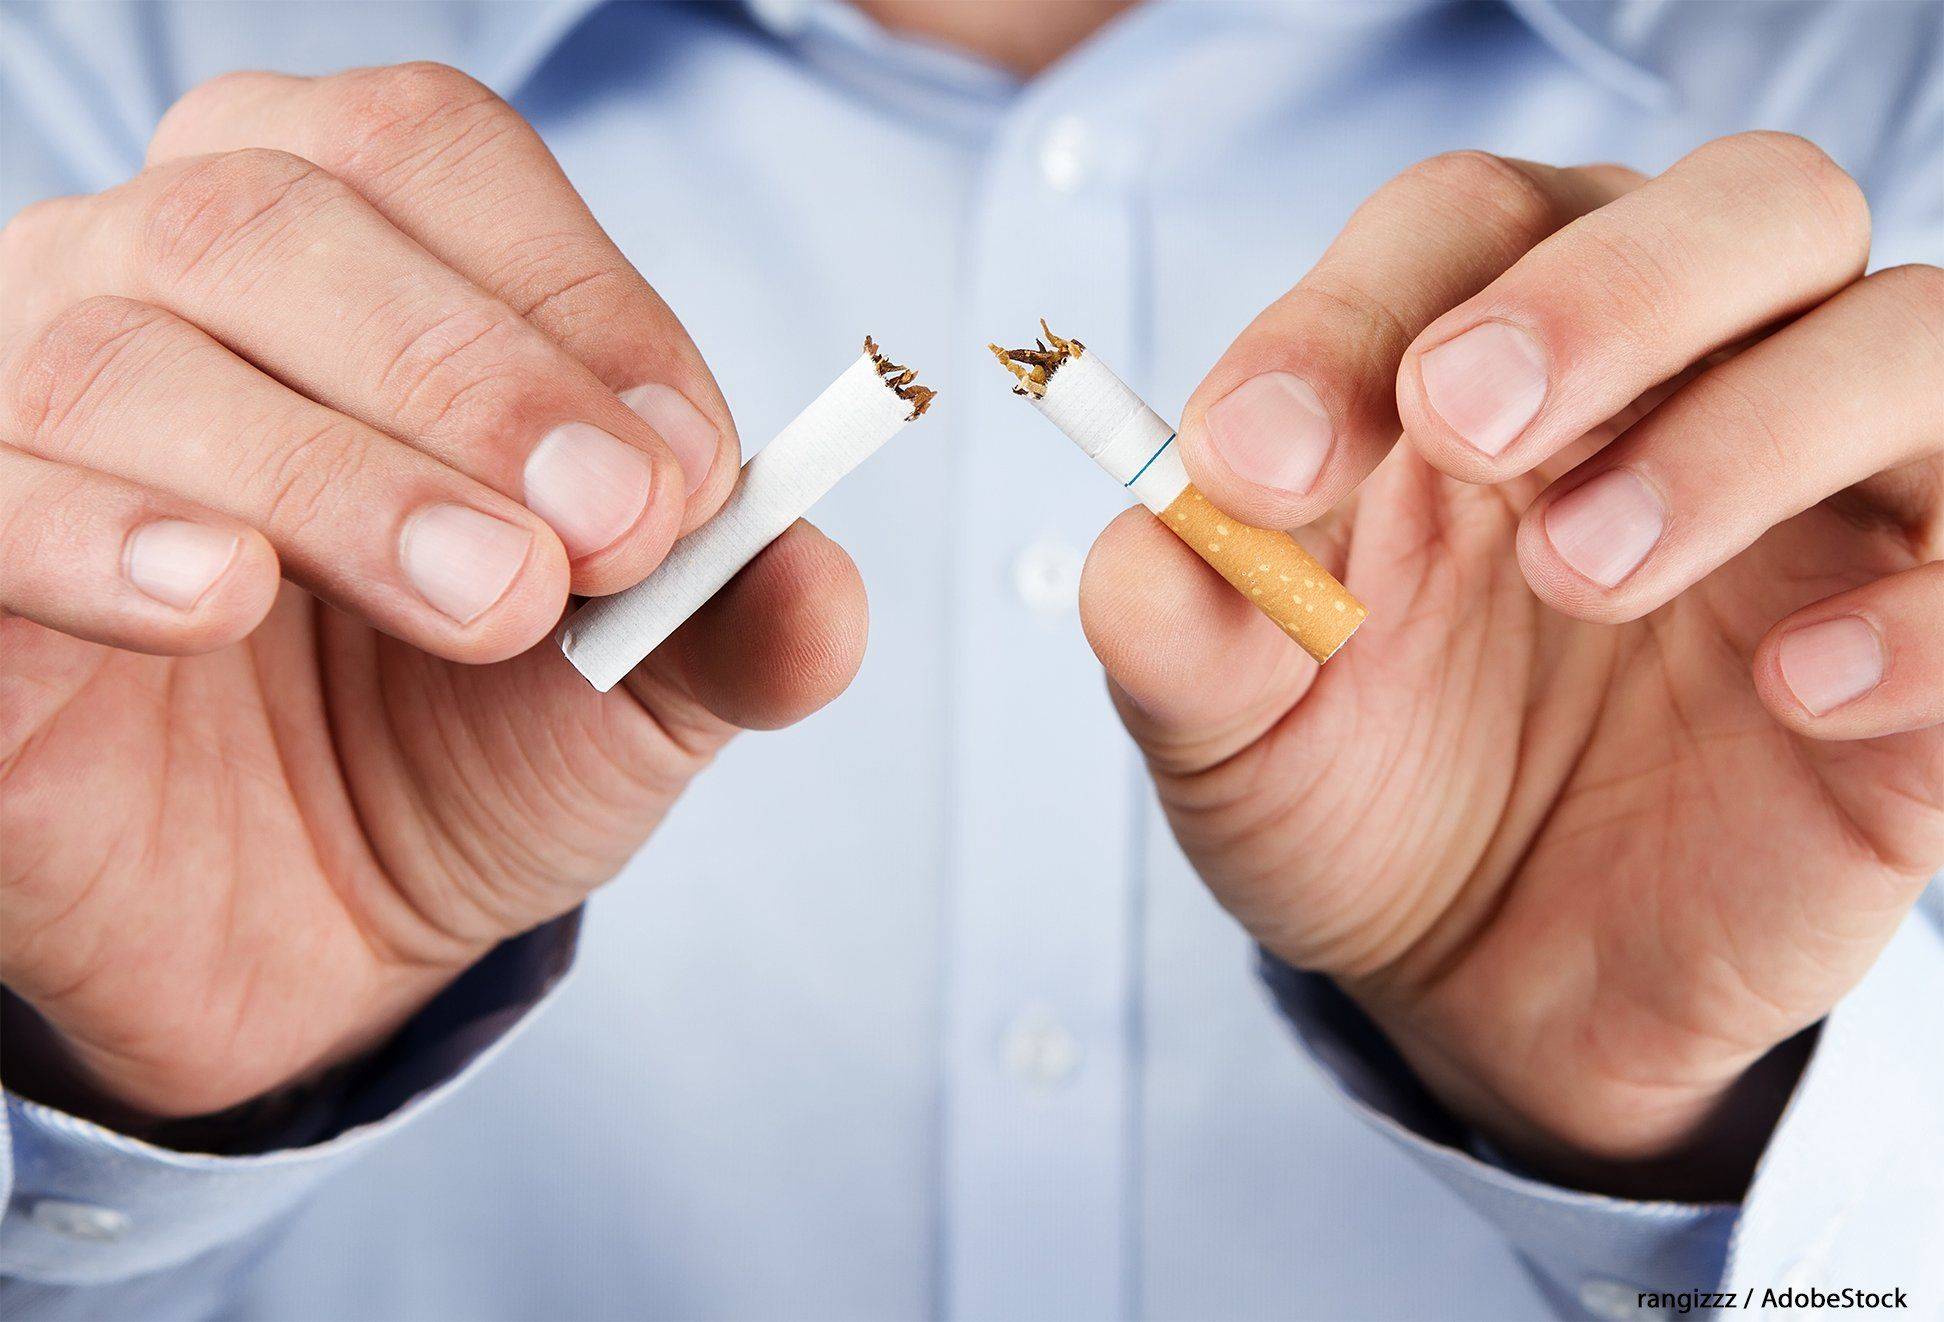 How to get  patients to stop smoking